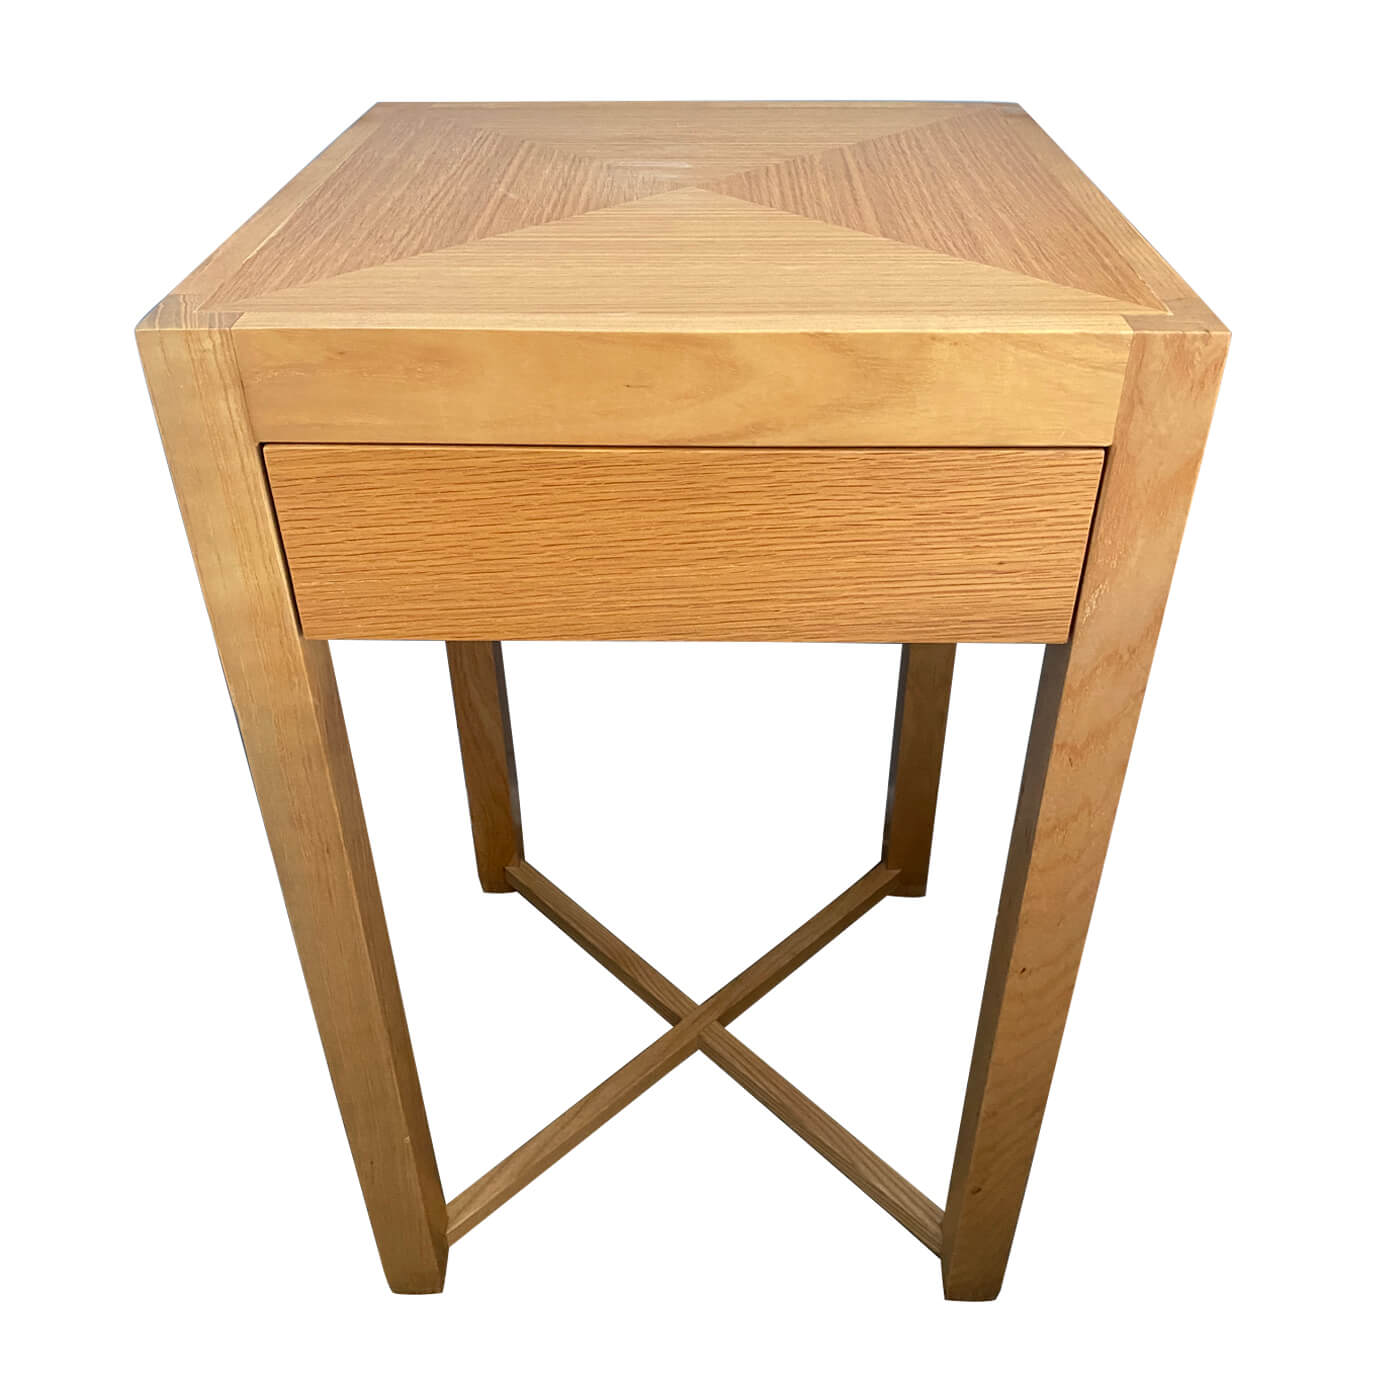 Two-Design-Lovers-Square-Bedside-Table-with-Drawer